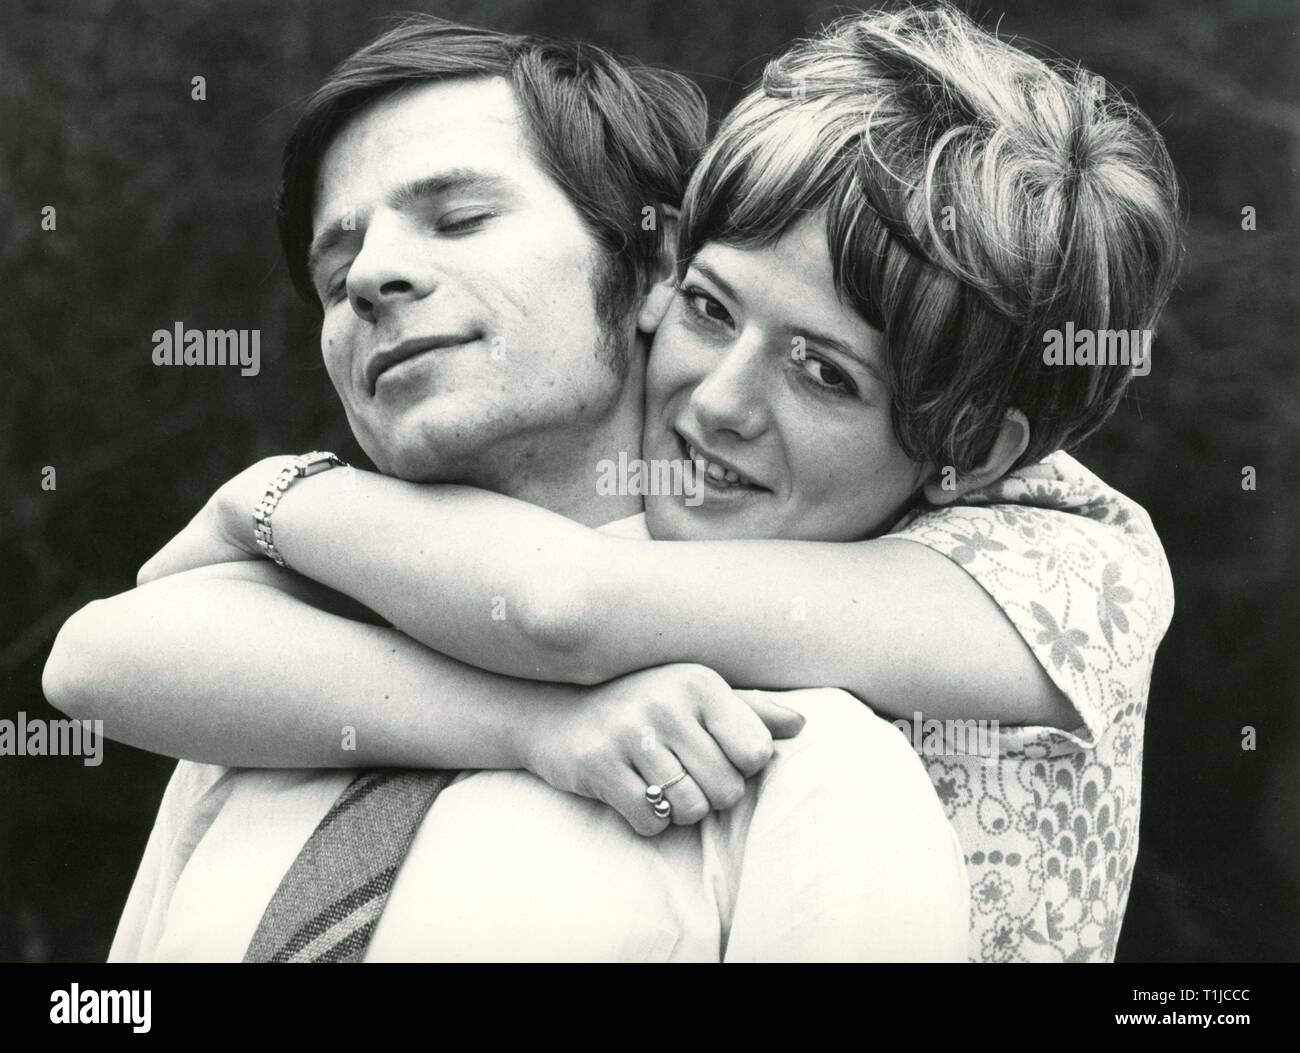 people, couples, lovers / romanticism, couple embracing each other, 1970s, Additional-Rights-Clearance-Info-Not-Available - Stock Image